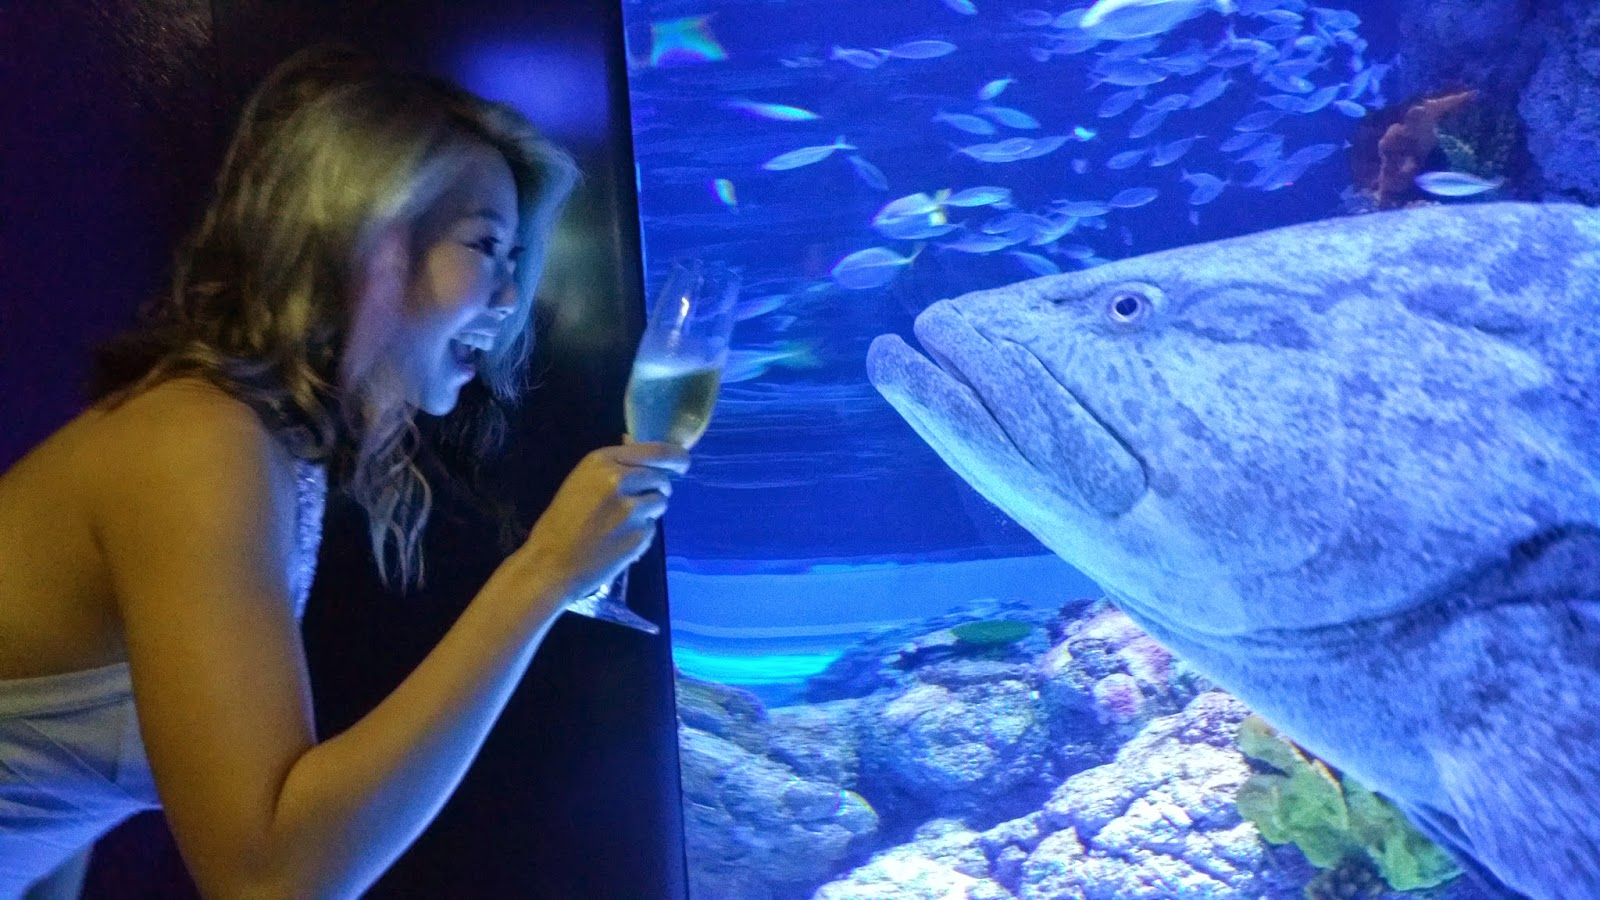 Fish aquarium in johor bahru - The Stroll Towards The Ballroom Will Be Lined With Mini Aquariums And Different